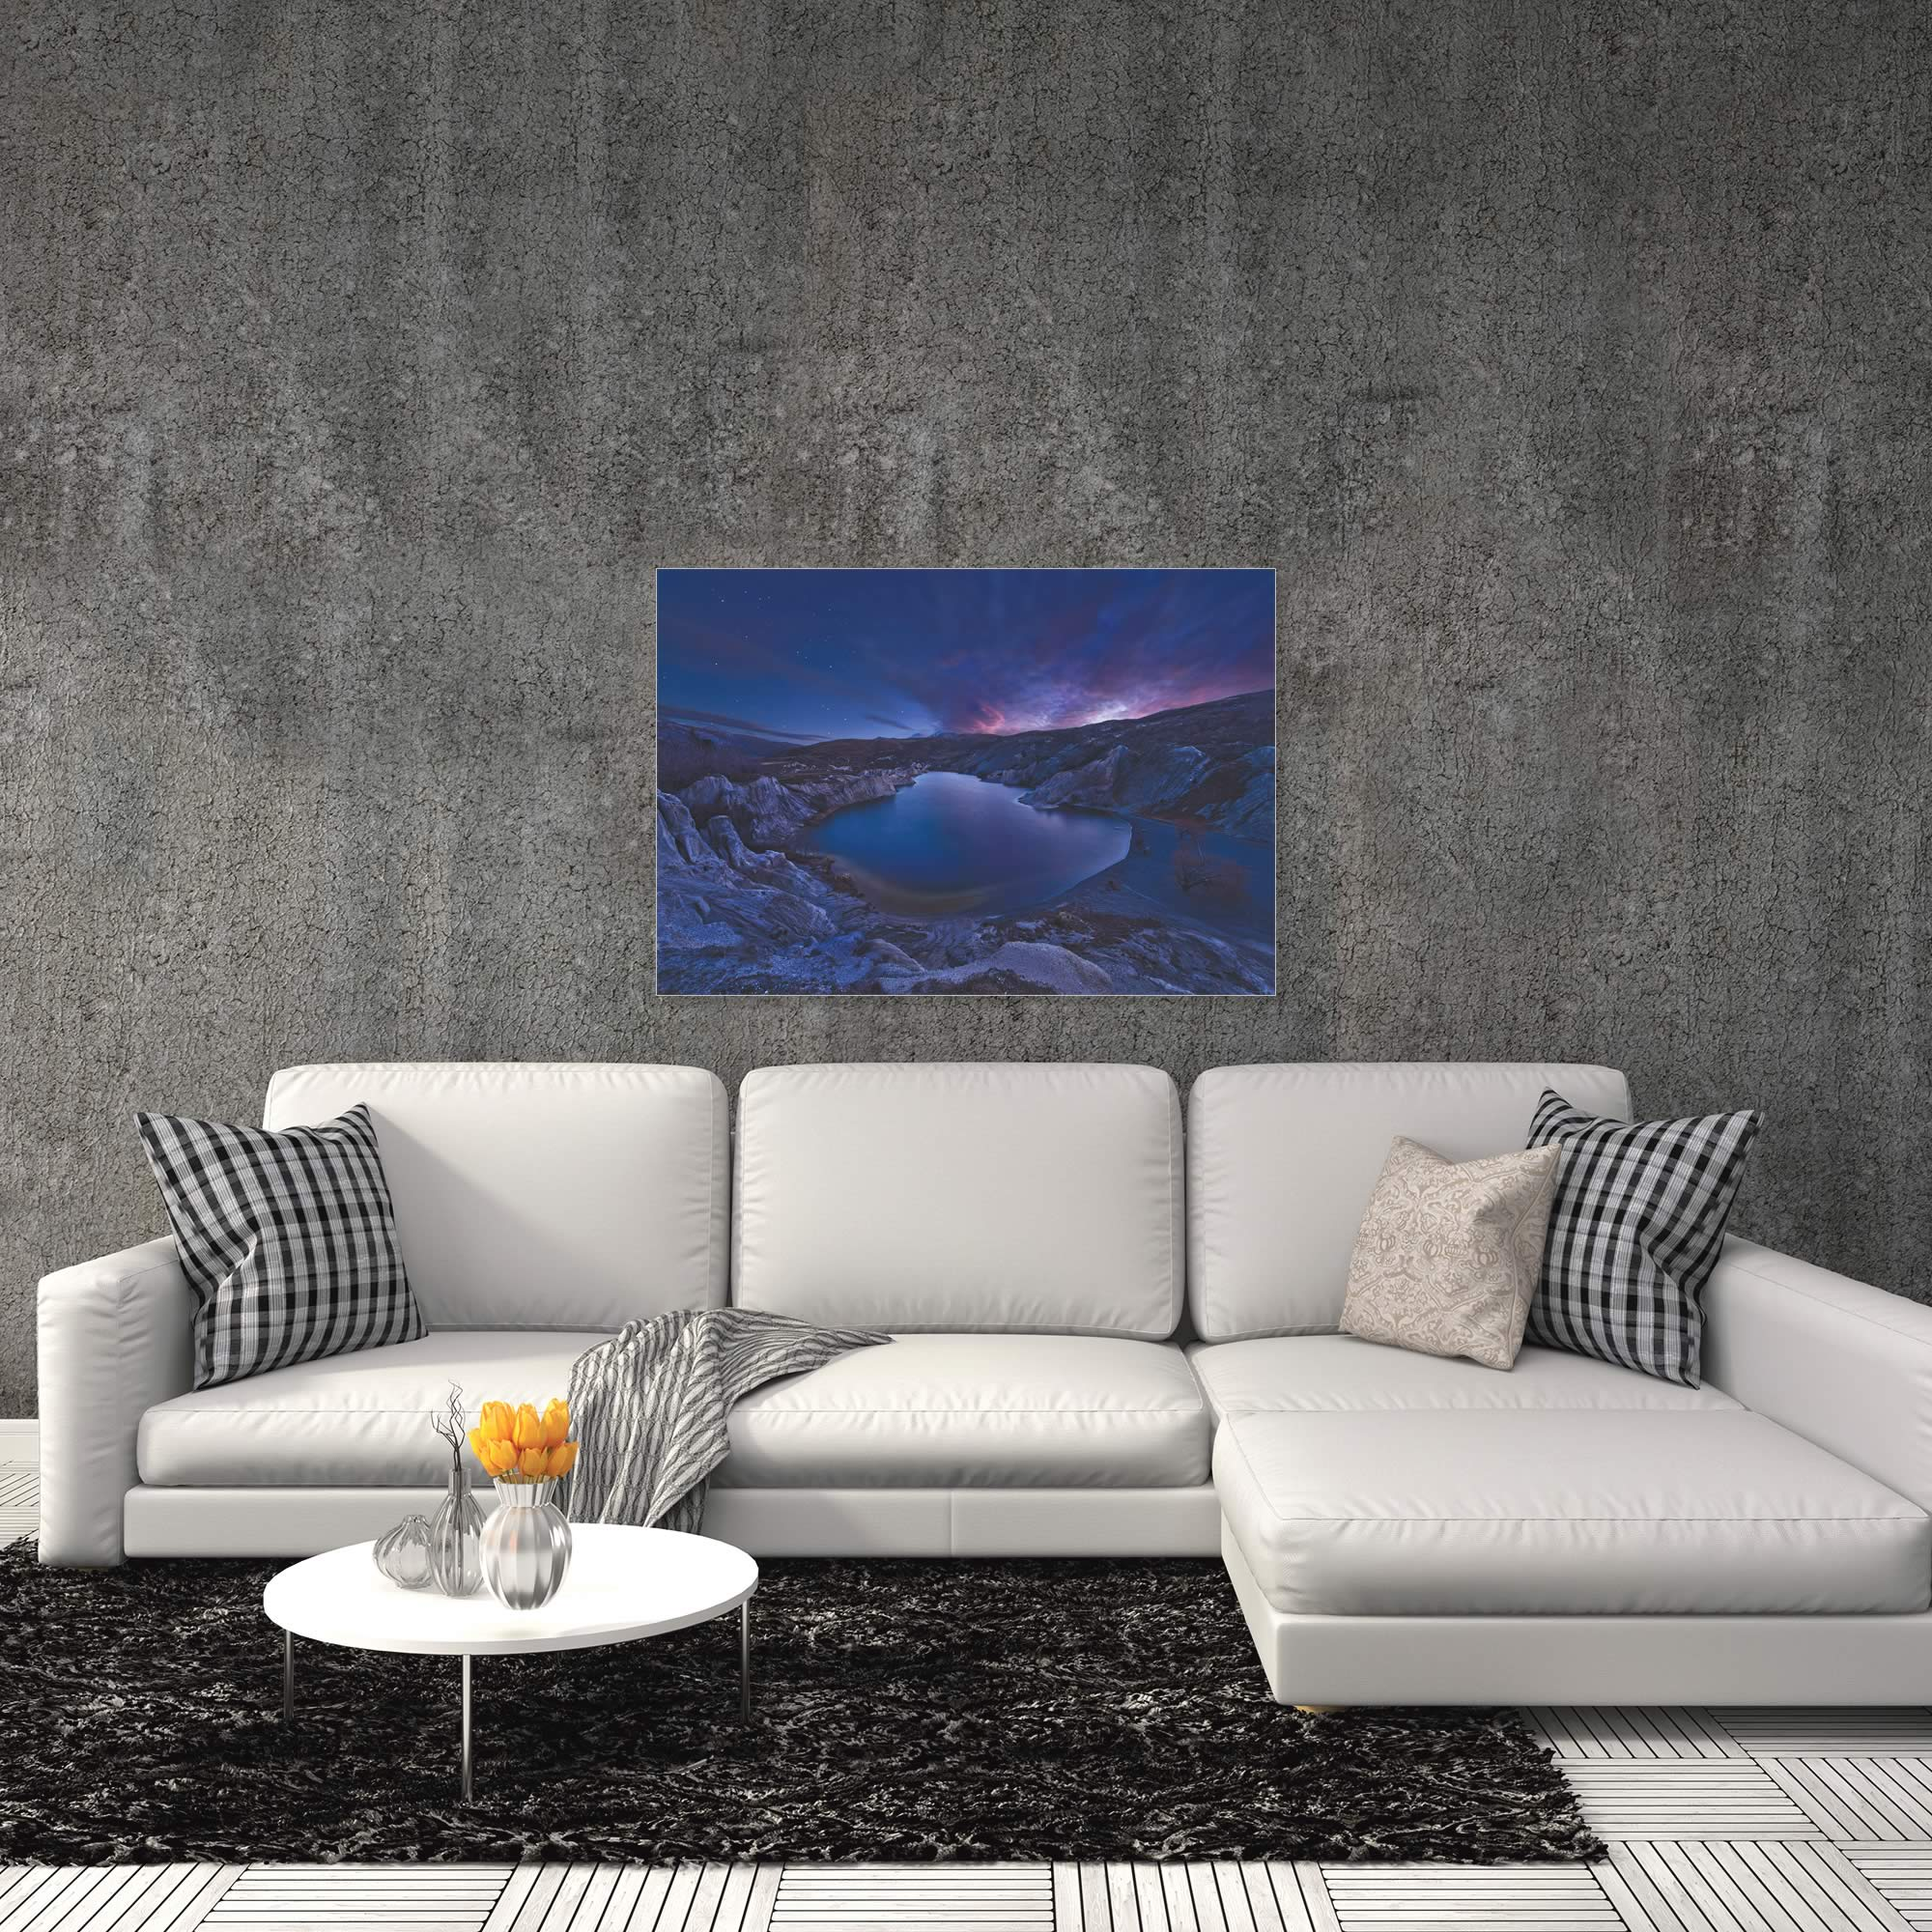 Blue Lake by Yan Zhang - Water Art on Metal or Acrylic - Alternate View 1